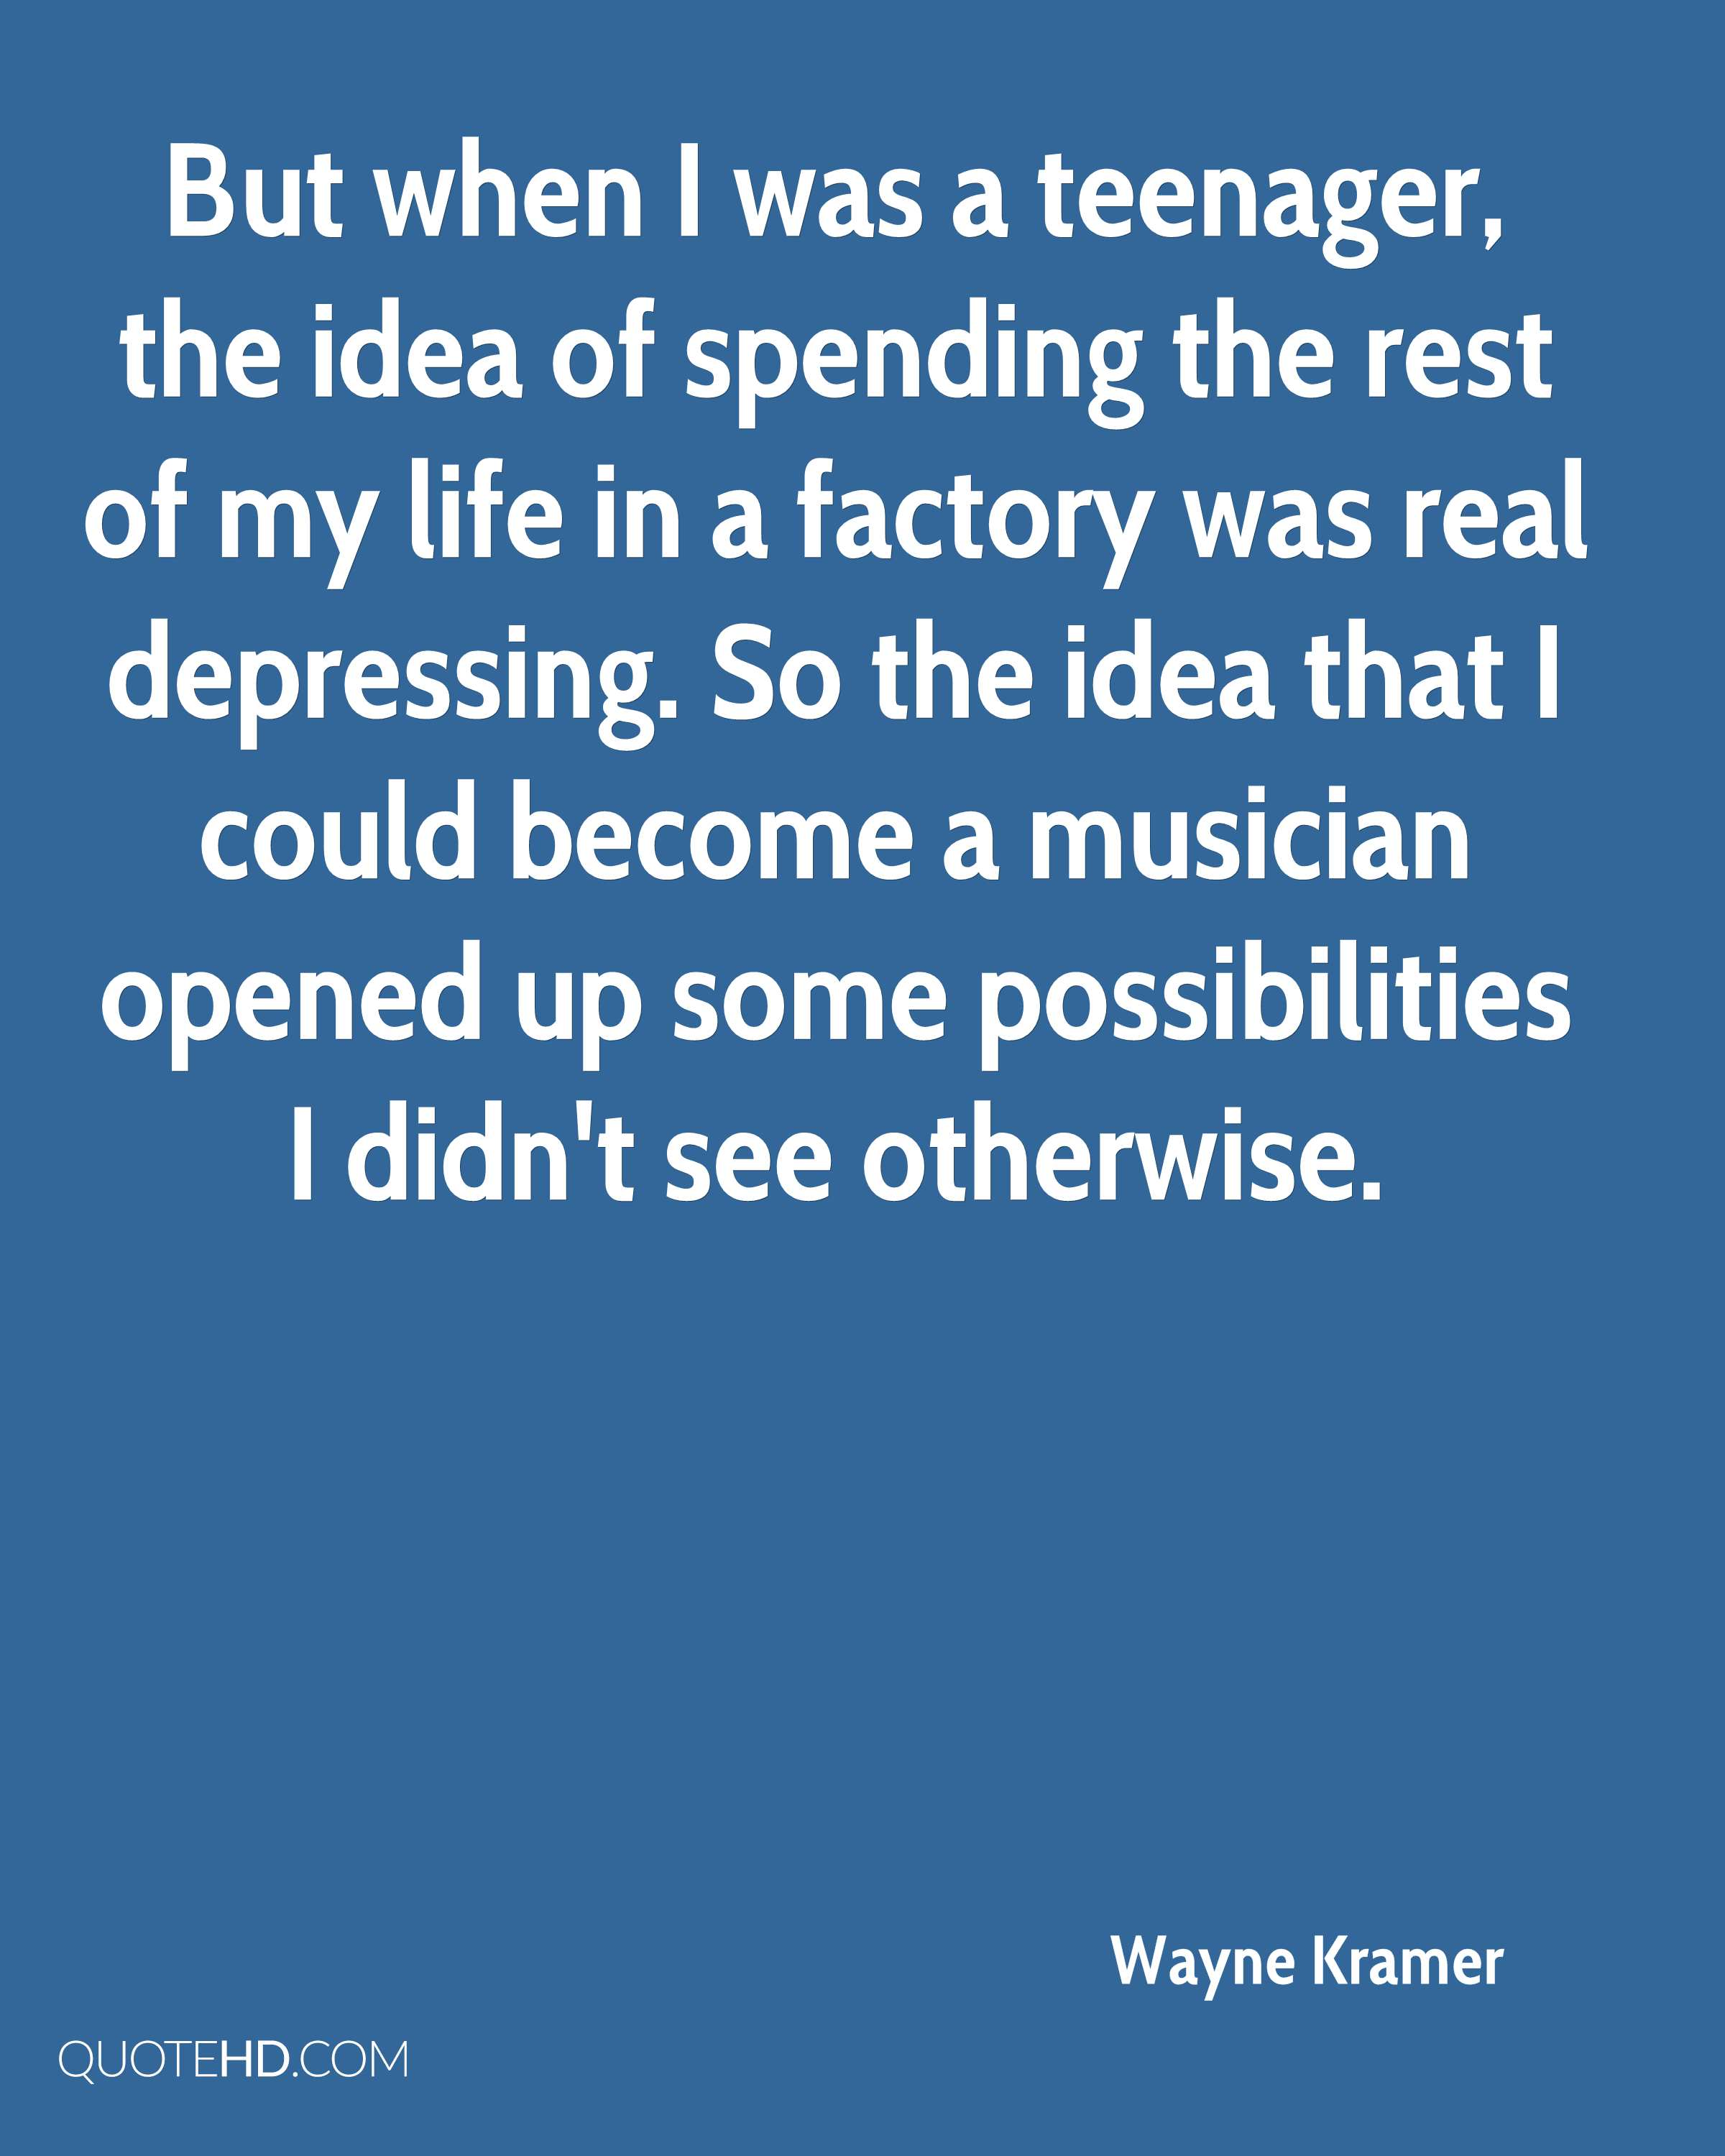 But when I was a teenager, the idea of spending the rest of my life in a factory was real depressing. So the idea that I could become a musician opened up some possibilities I didn't see otherwise.